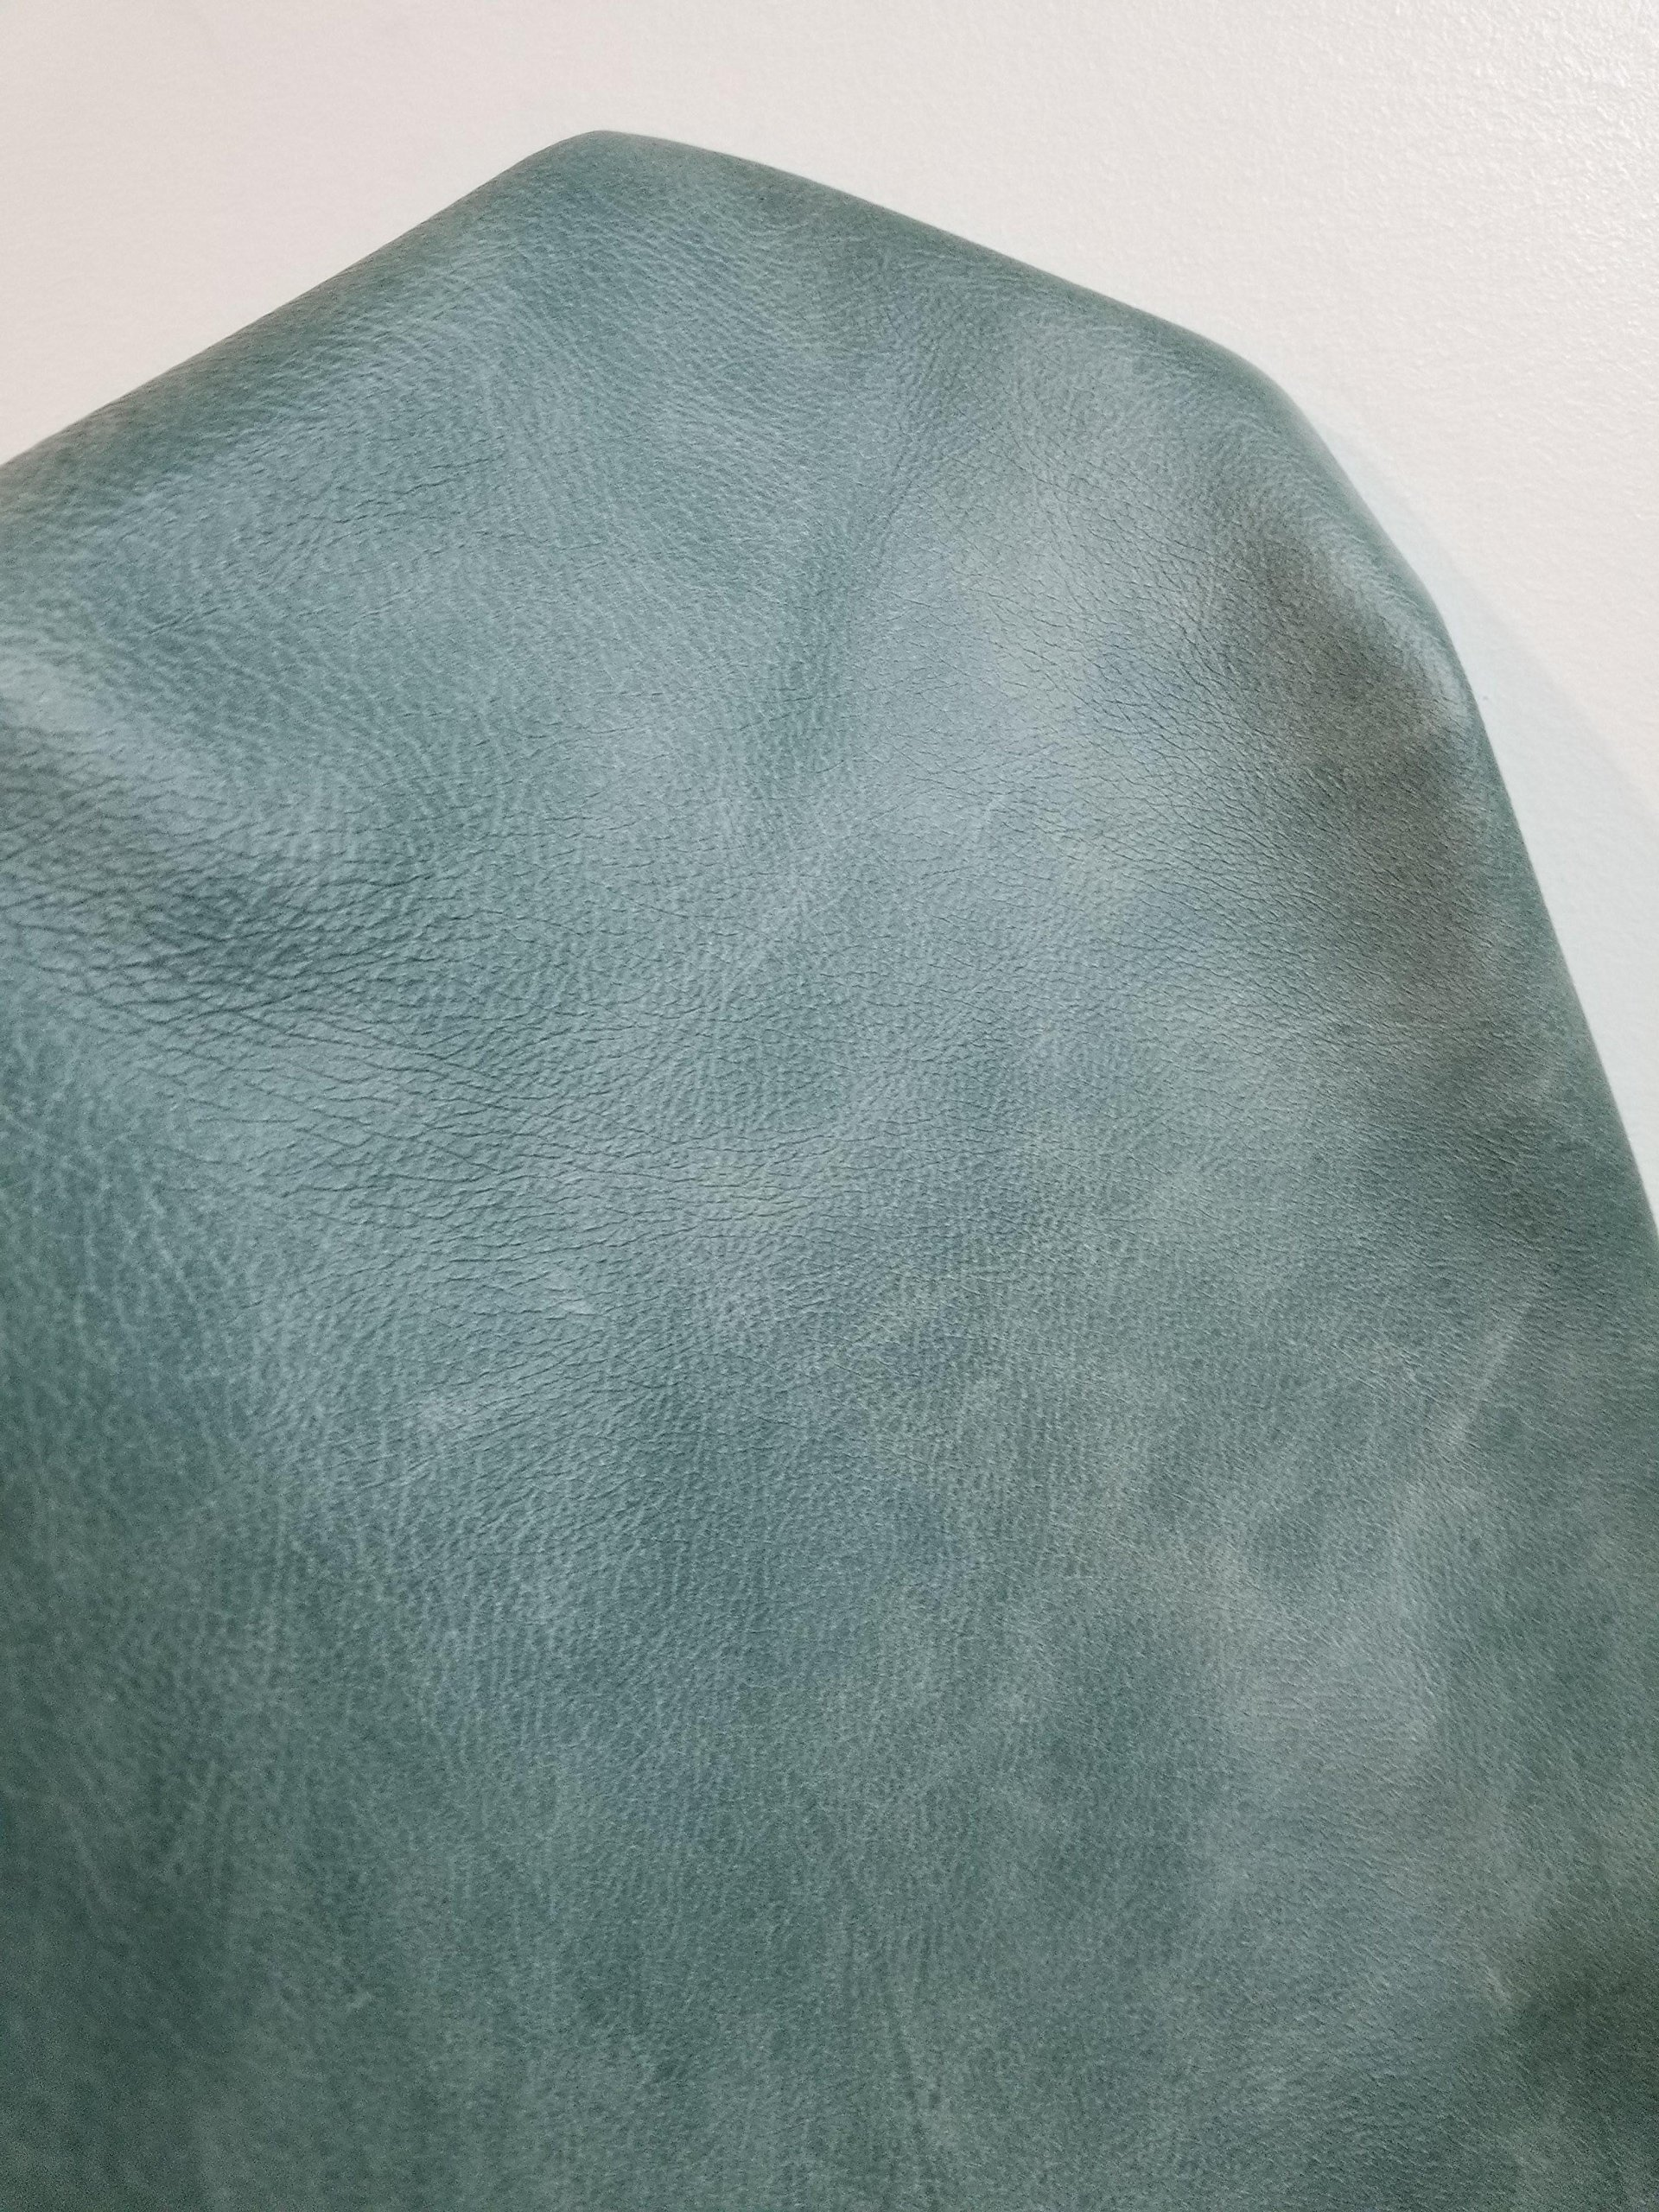 NAT Leathers Turquoise Blue Green Vintage Two Tone Soft Upholstery Chap Cowhide 2.5 oz Genuine Leather Hide Skin 42 Square Feet (About 60''x 70'') Produced in Italy (Turquoise 42 sq.ft.)